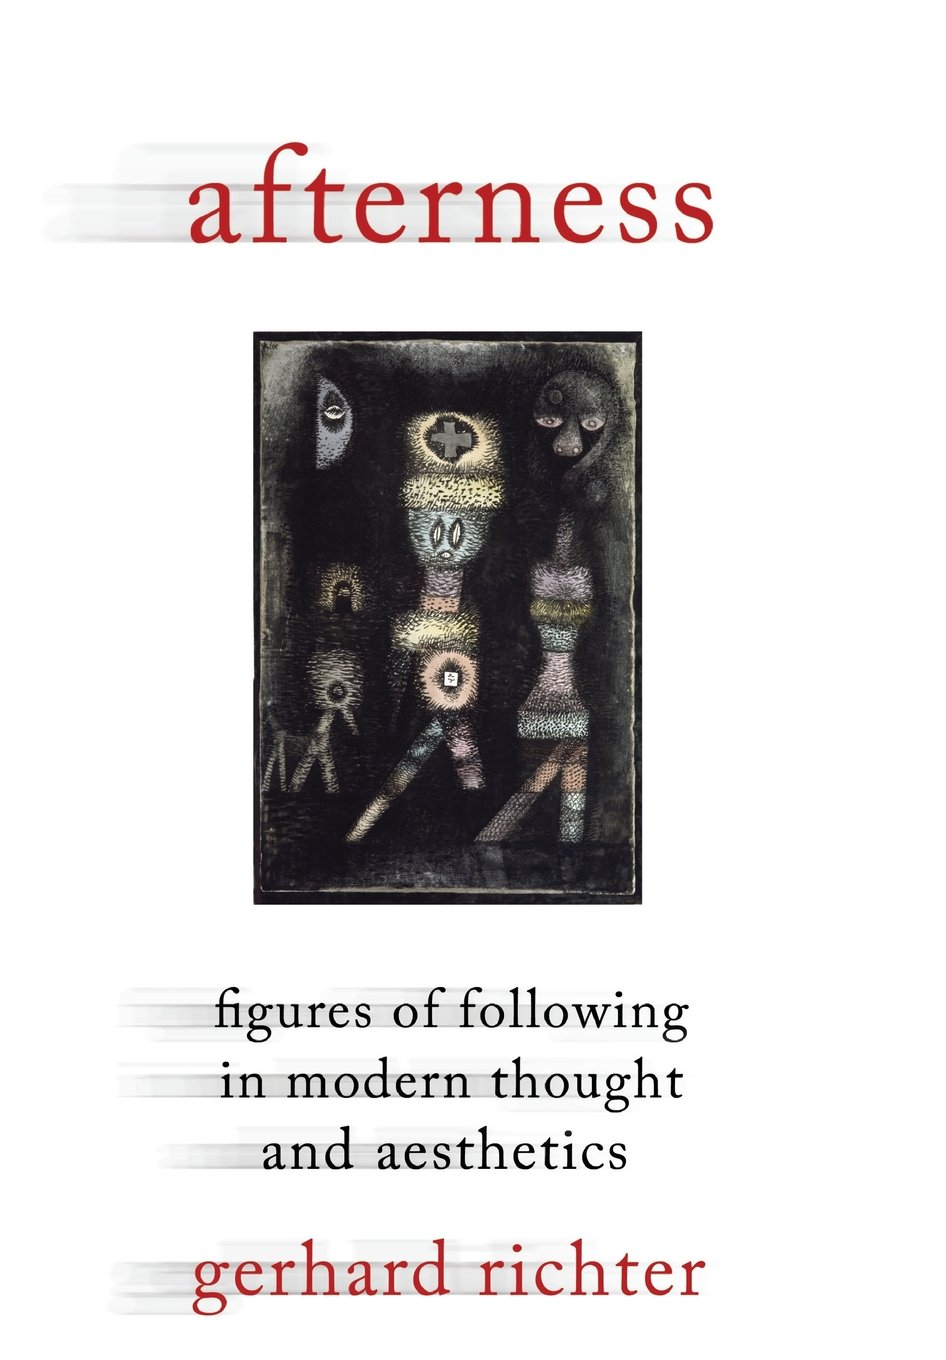 Download Afterness: Figures of Following in Modern Thought and Aesthetics (Columbia Themes in Philosophy, Social Criticism, and the Arts) Text fb2 ebook